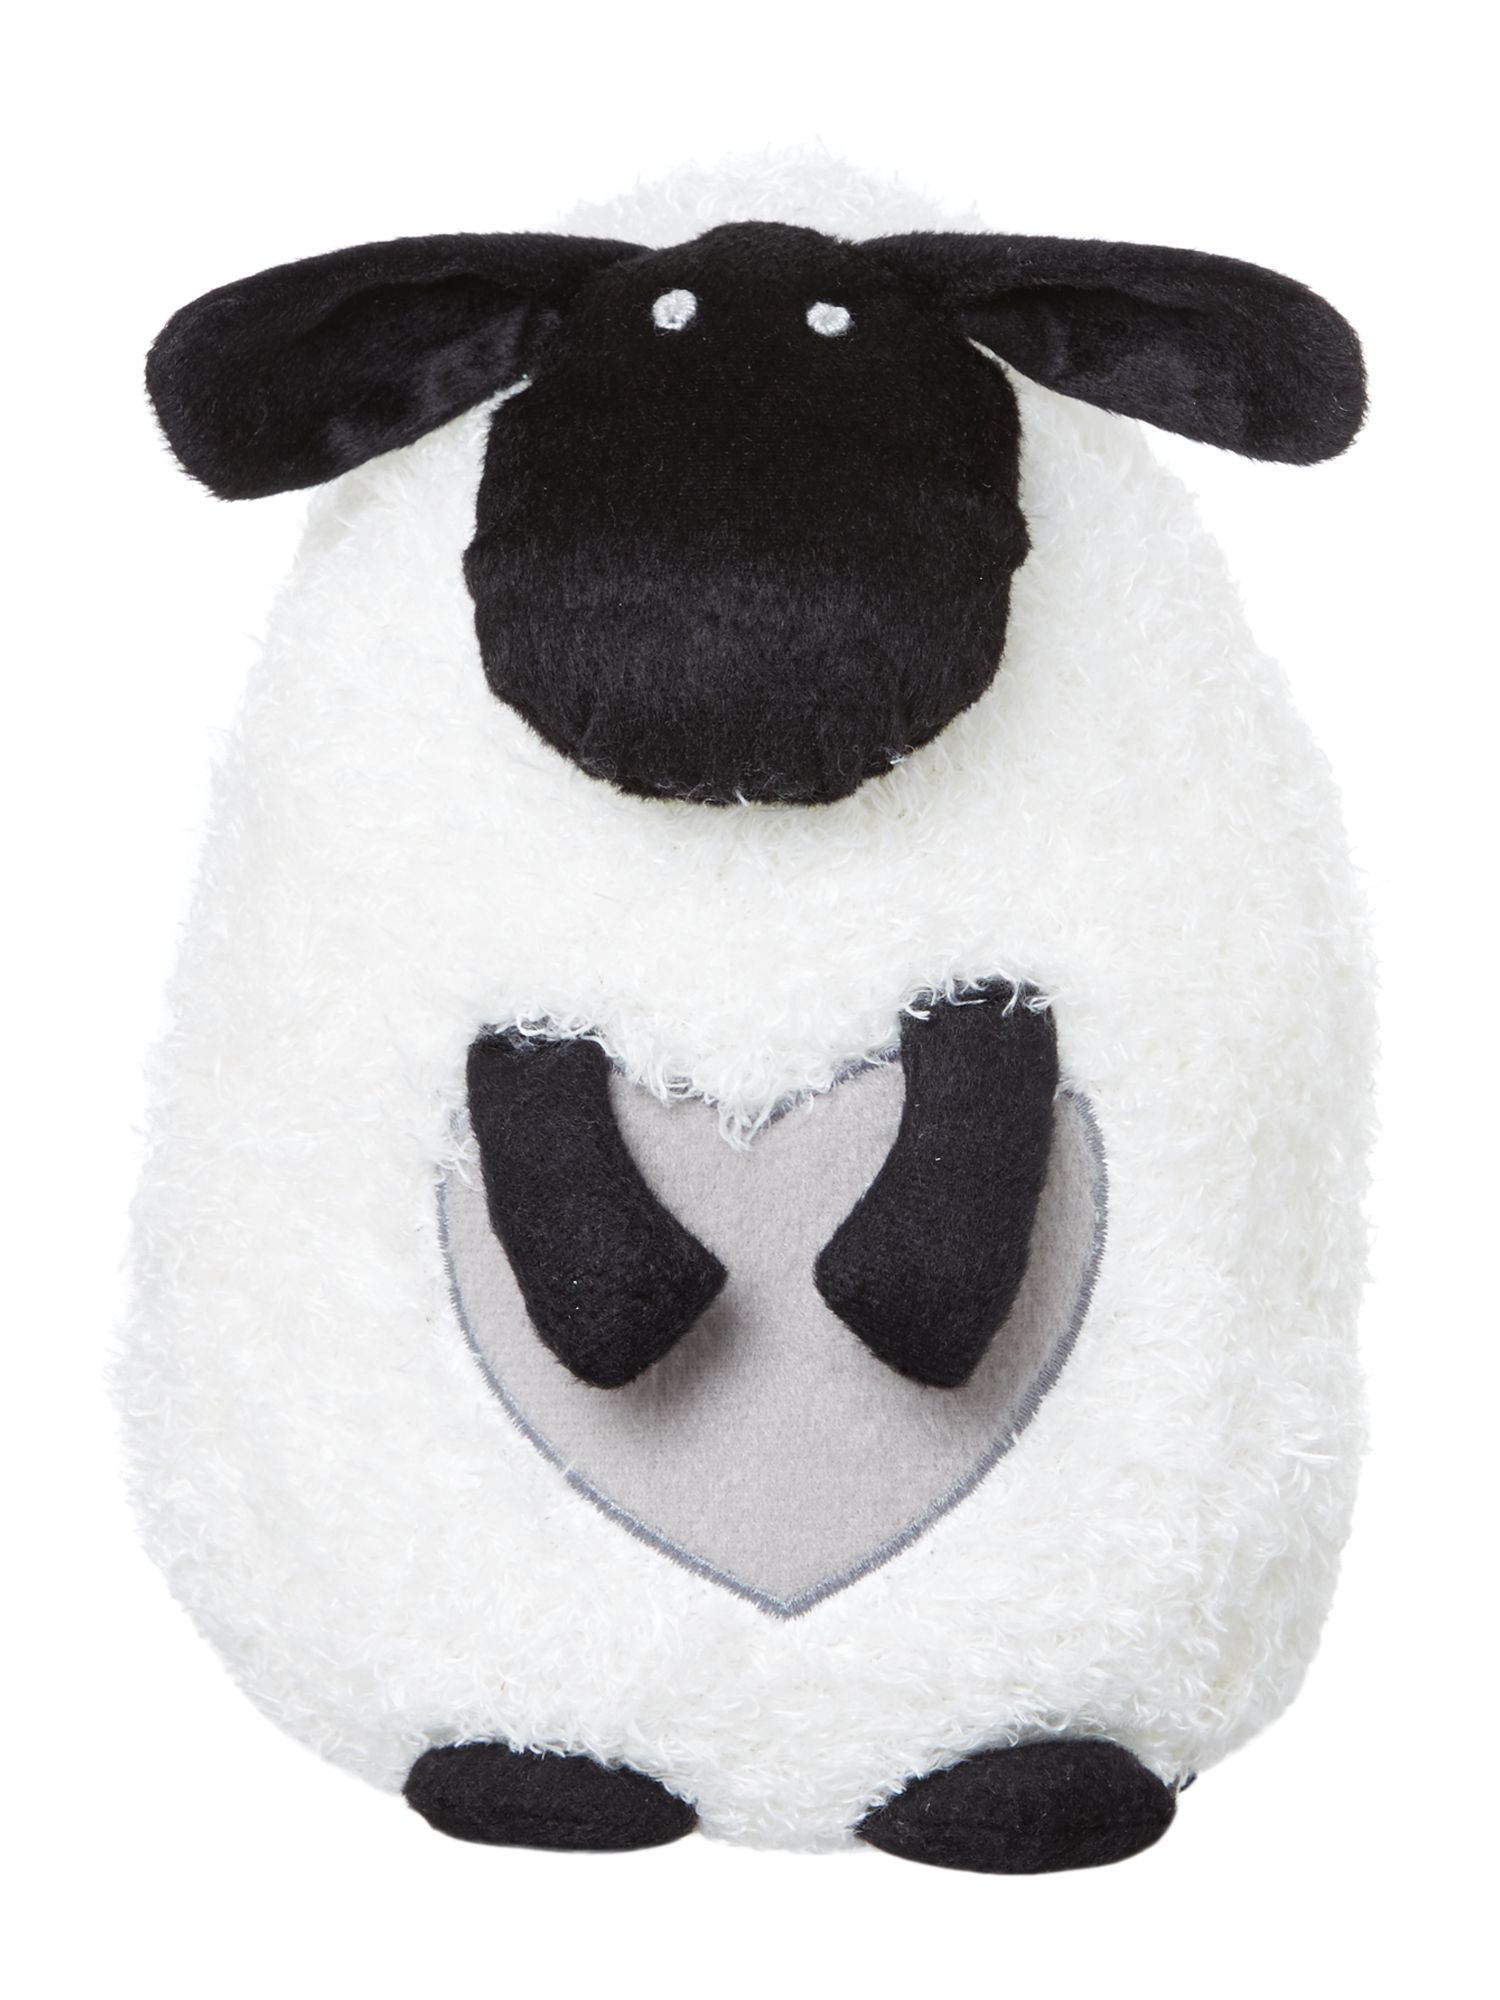 Sherman the Sheep doorstop